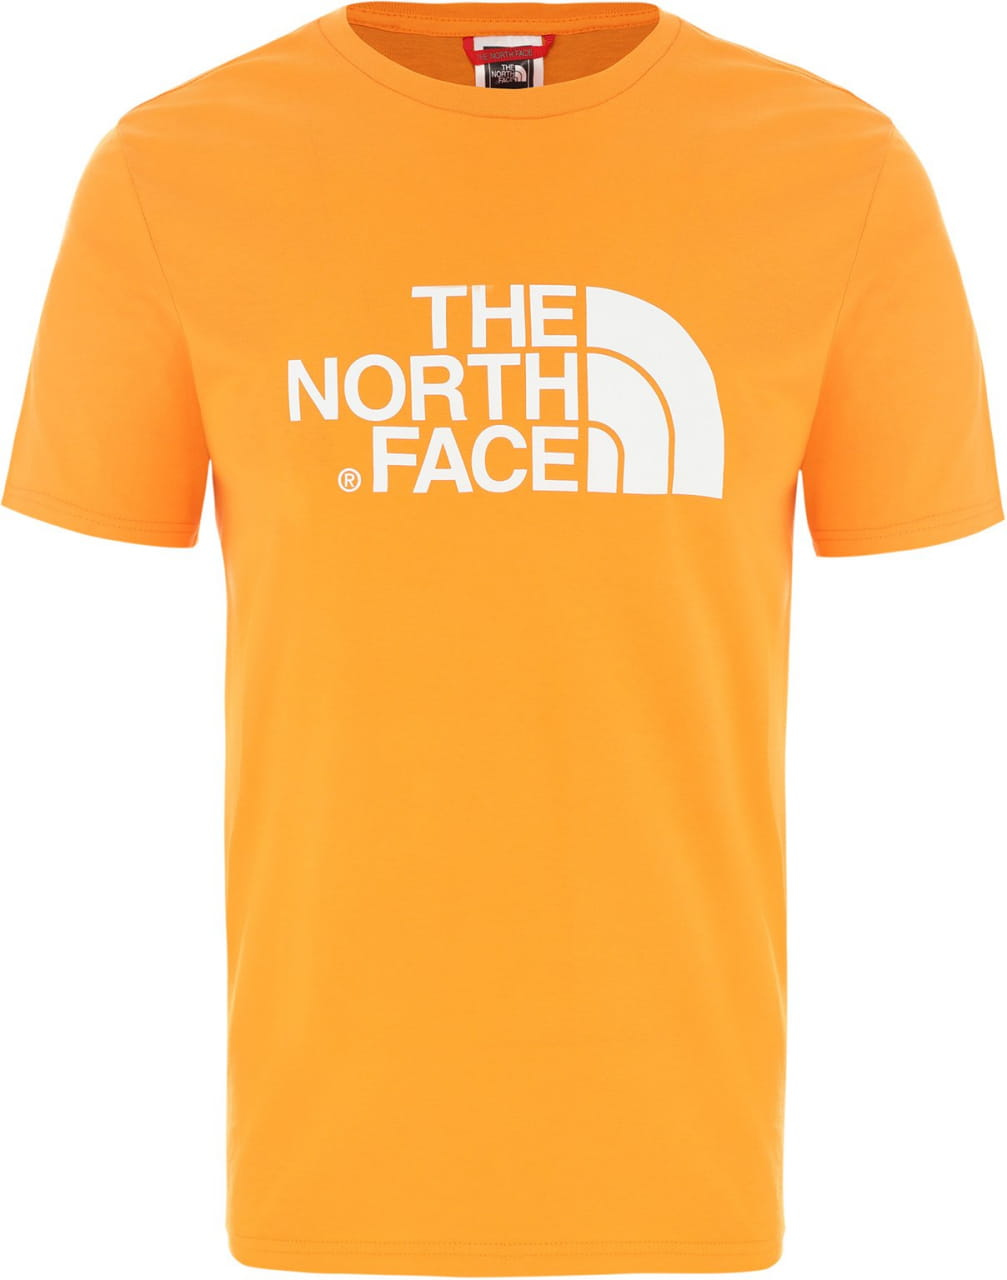 Pánské tričko The North Face Men's Easy T-Shirt